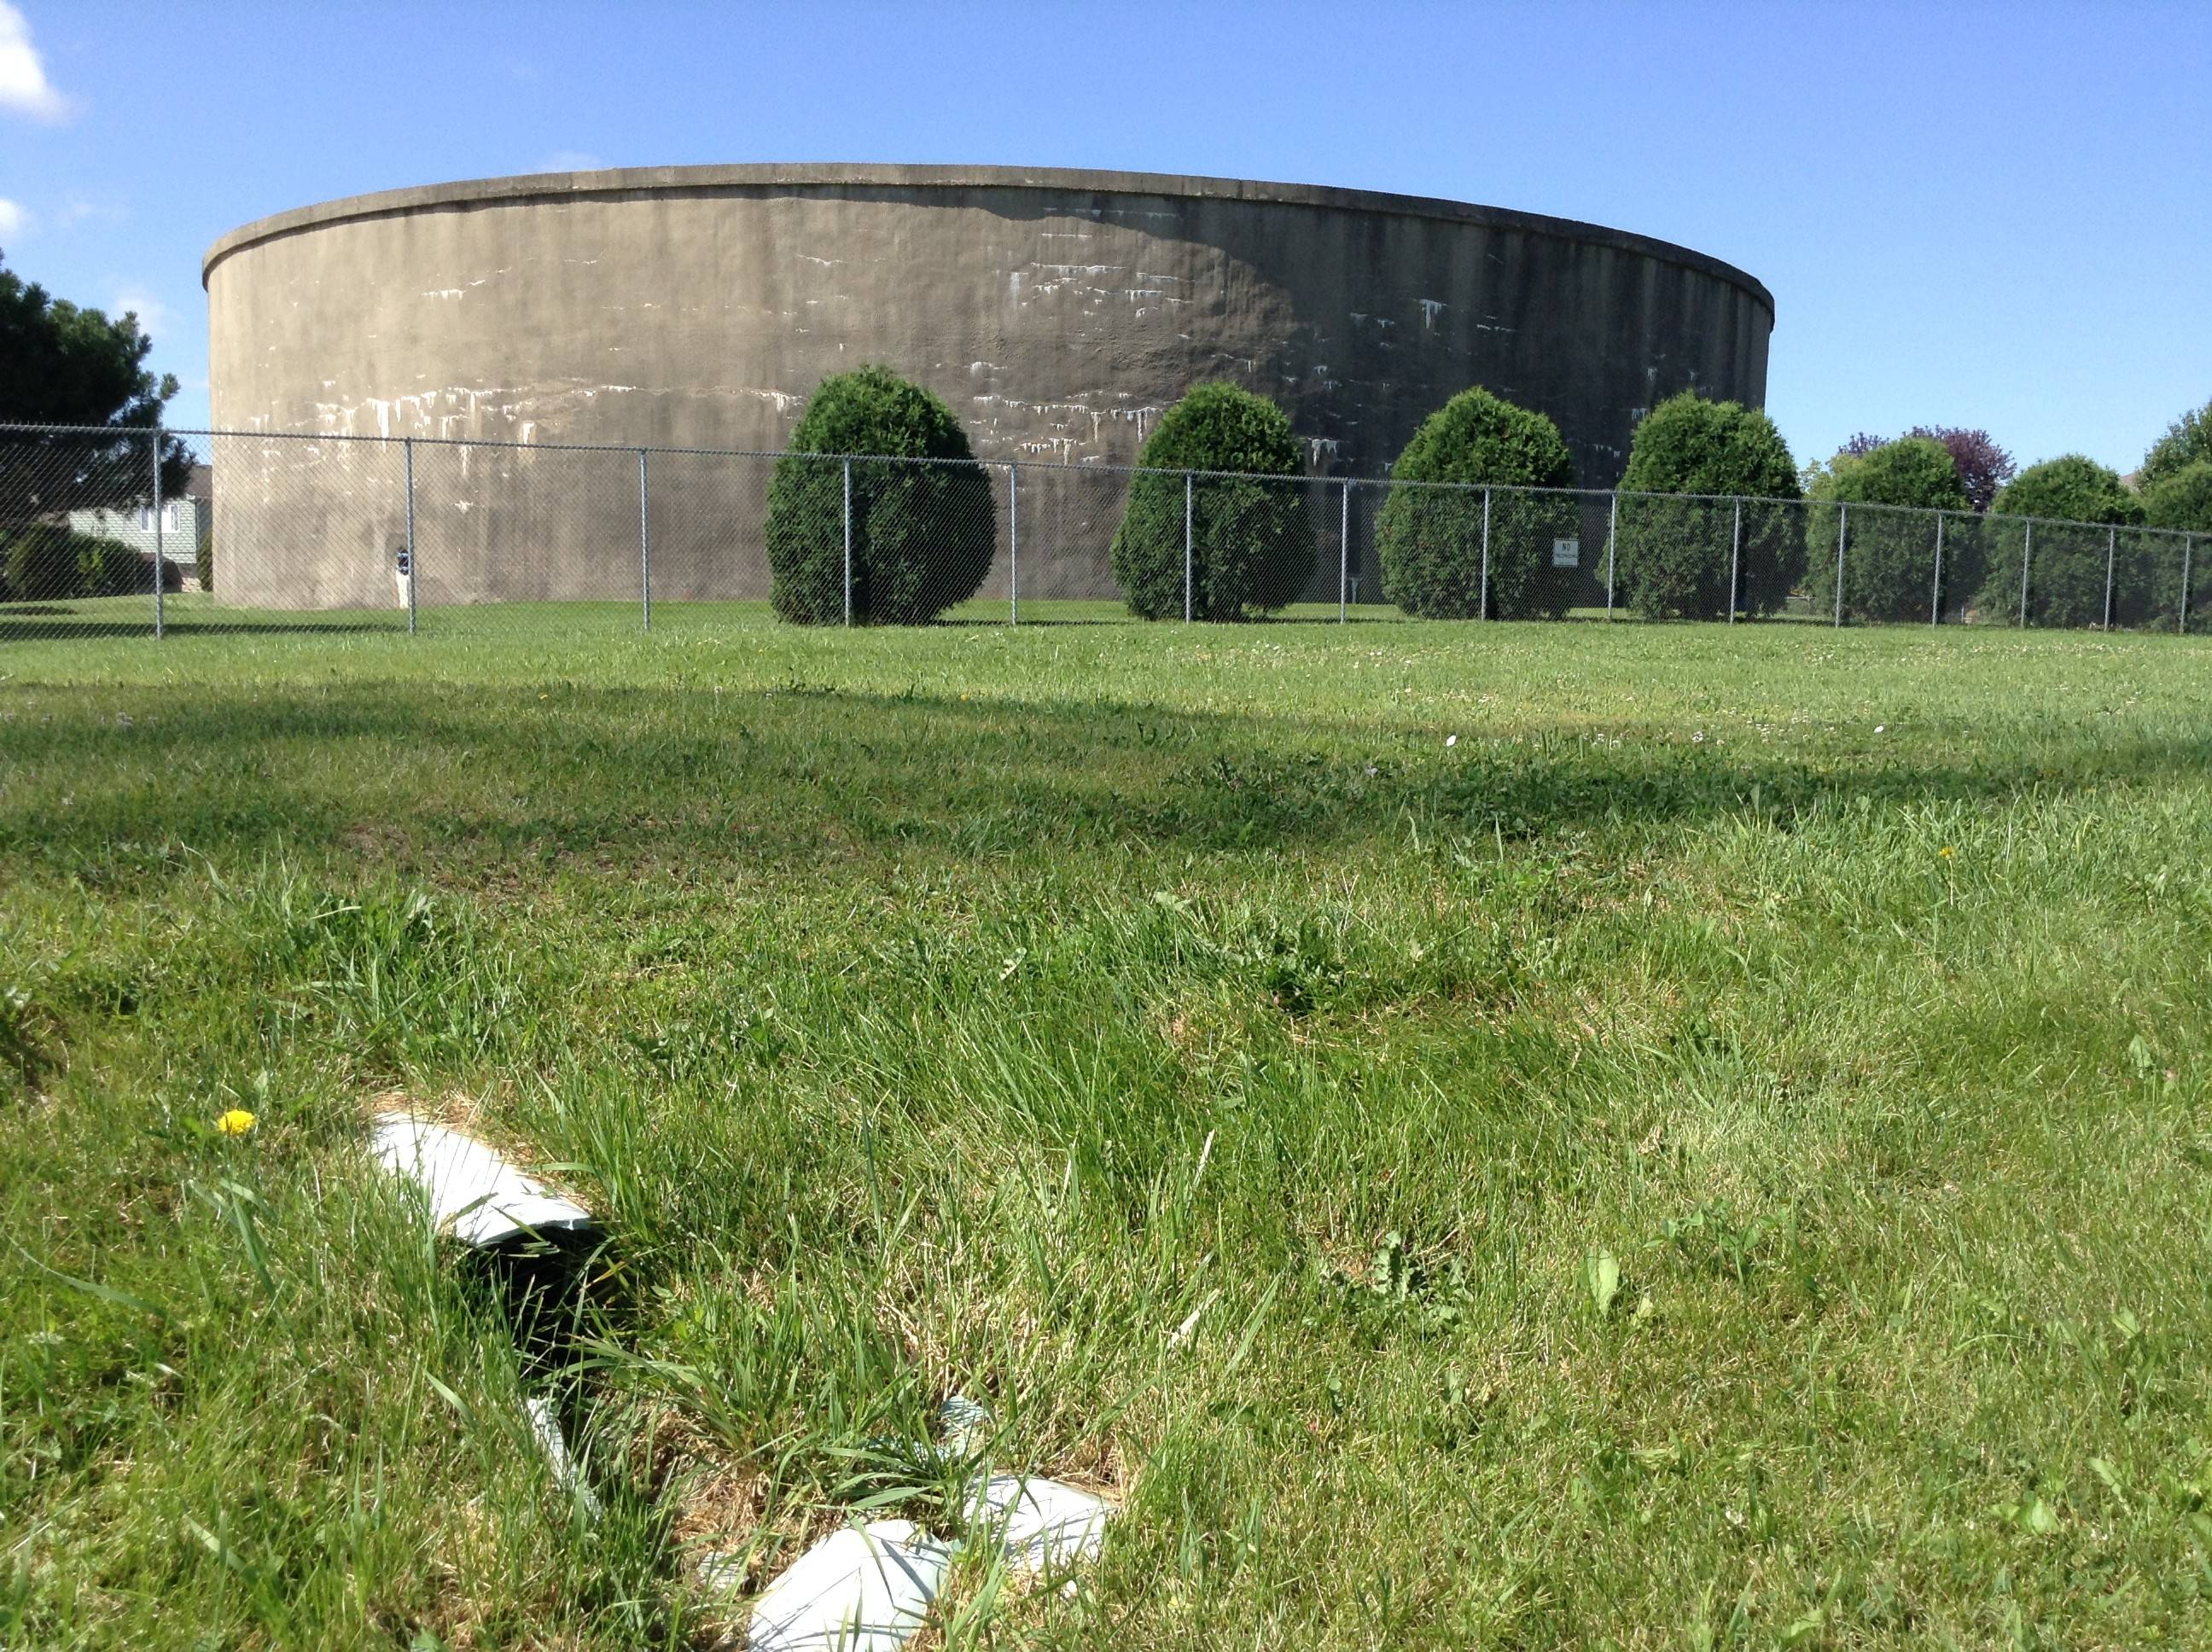 Des Plaines is planning to extend a new water pipe from this storage tank at 877 Central Road to the Northwest Water Commission, located about a mile away.